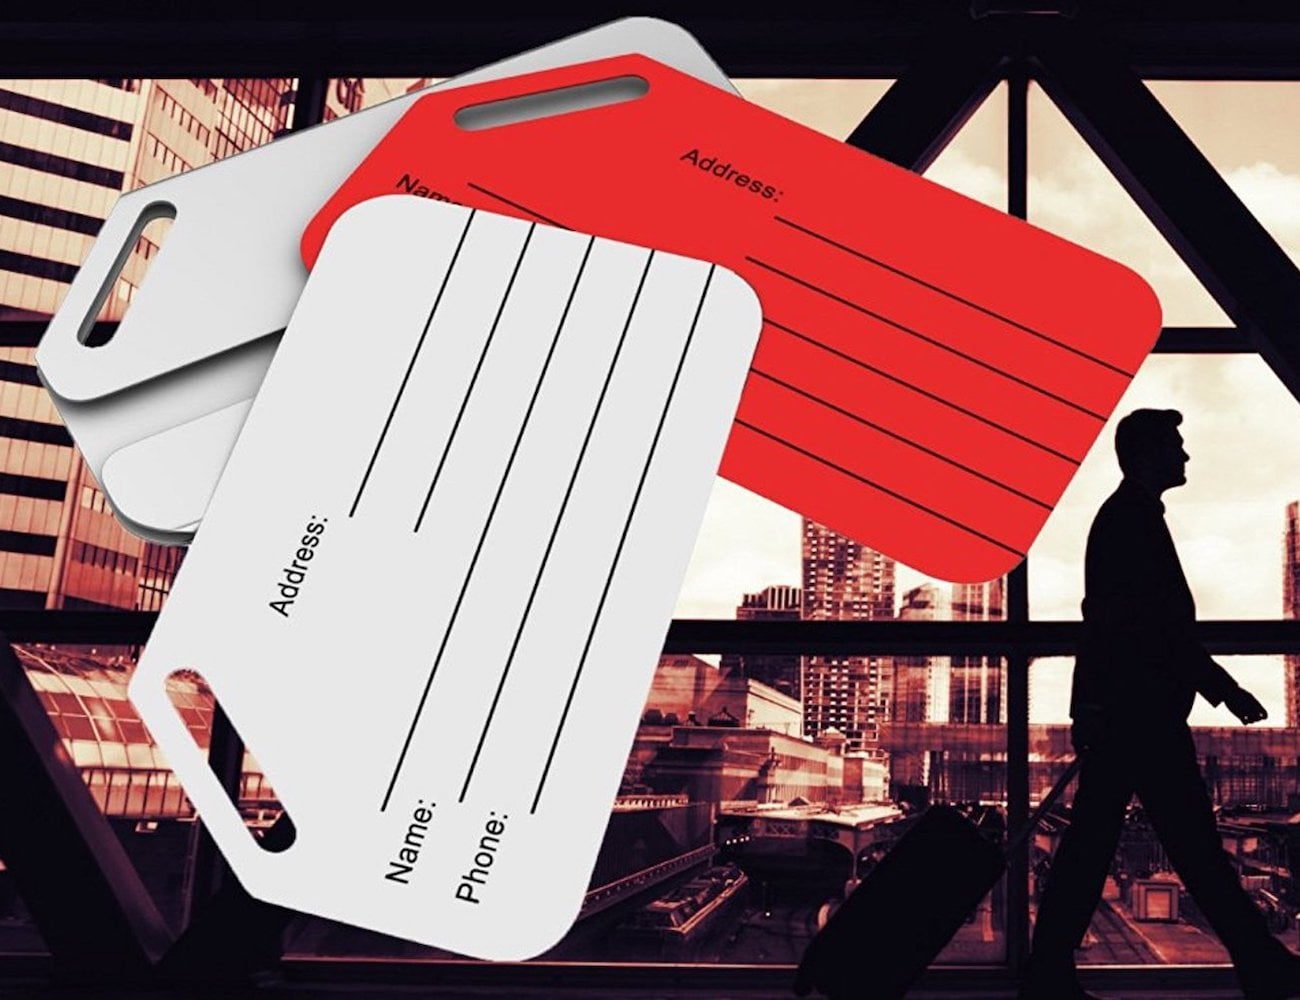 Stainless Steel Privacy Luggage Tag